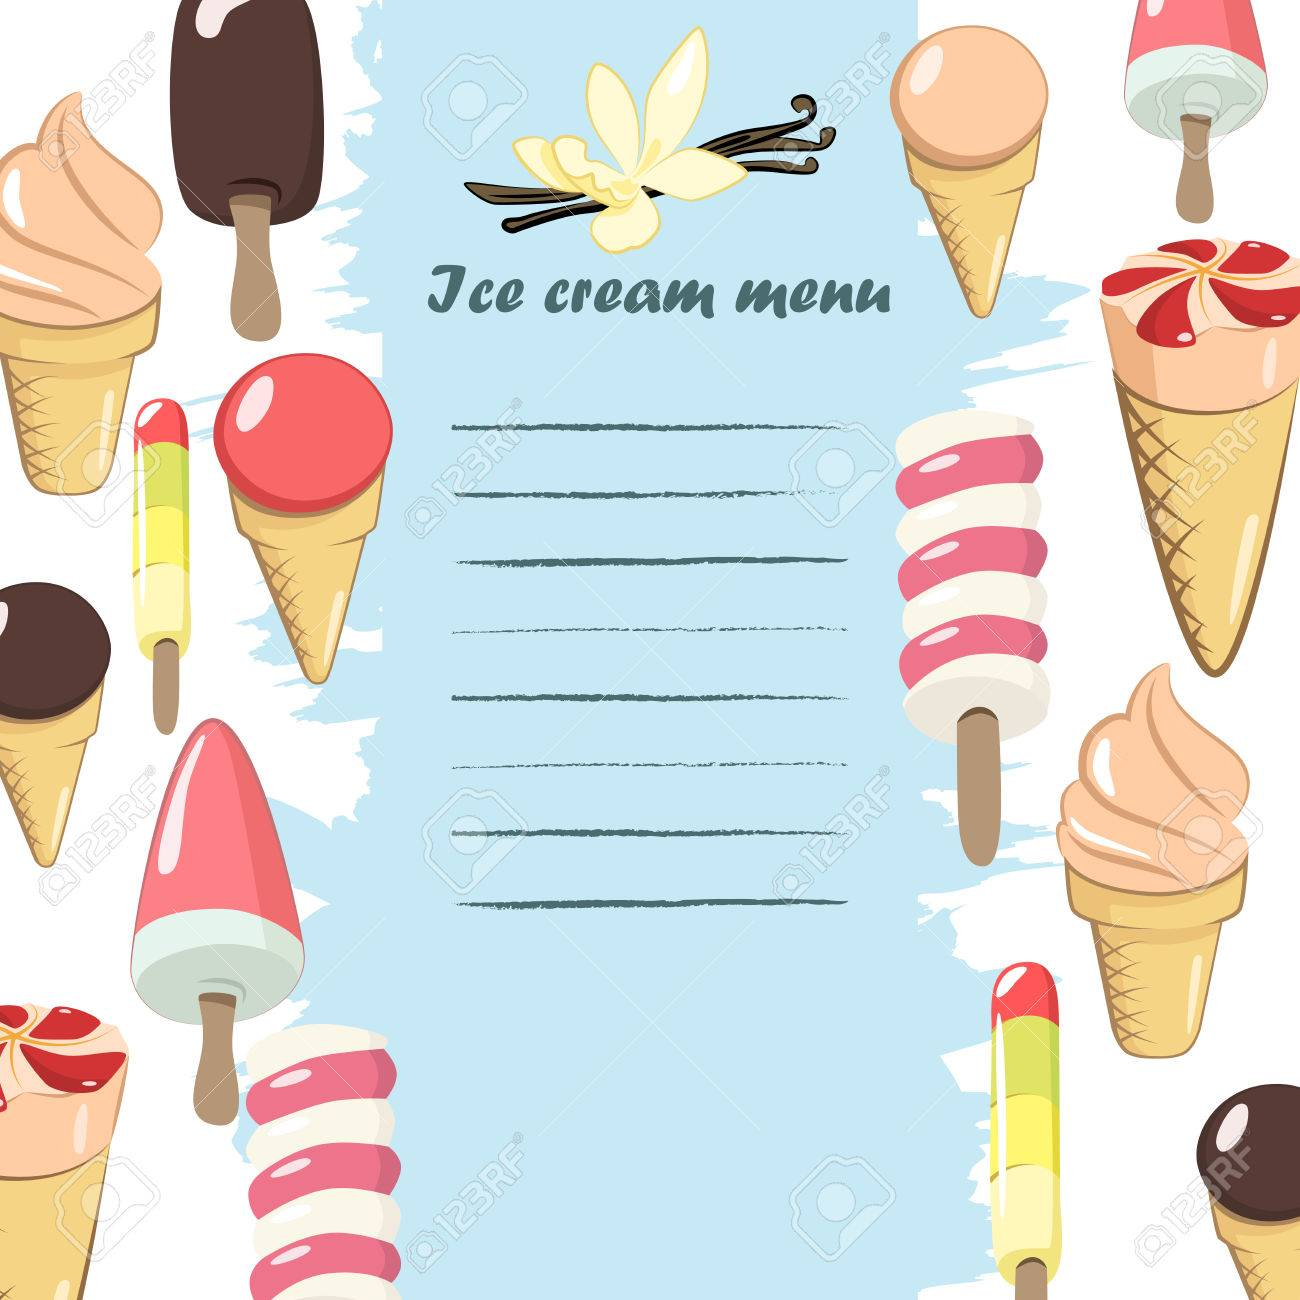 ice cream menu template illustrations royalty free cliparts